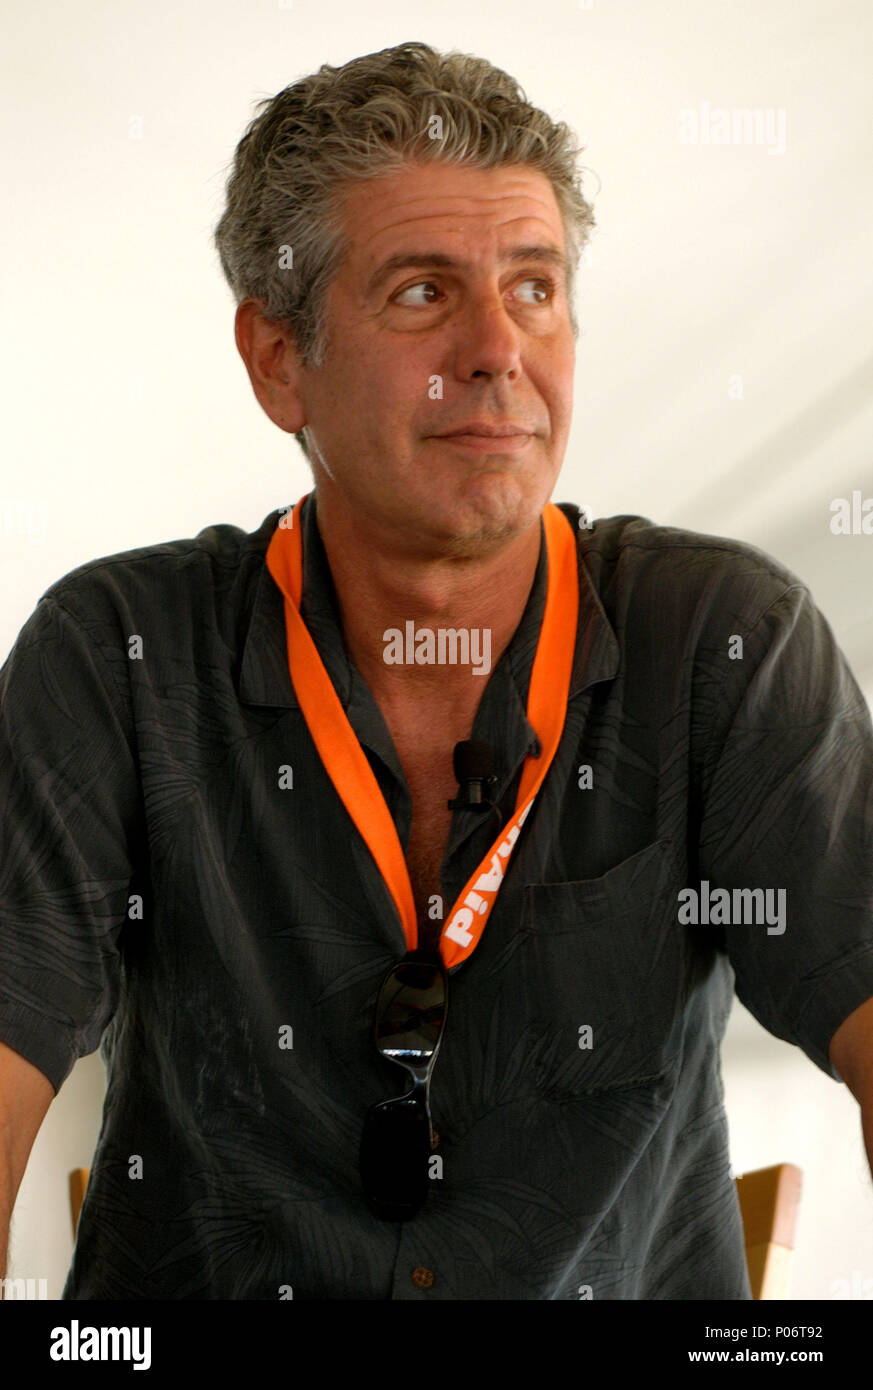 Anthony Bourdain Food Stockfotos & Anthony Bourdain Food Bilder - Alamy